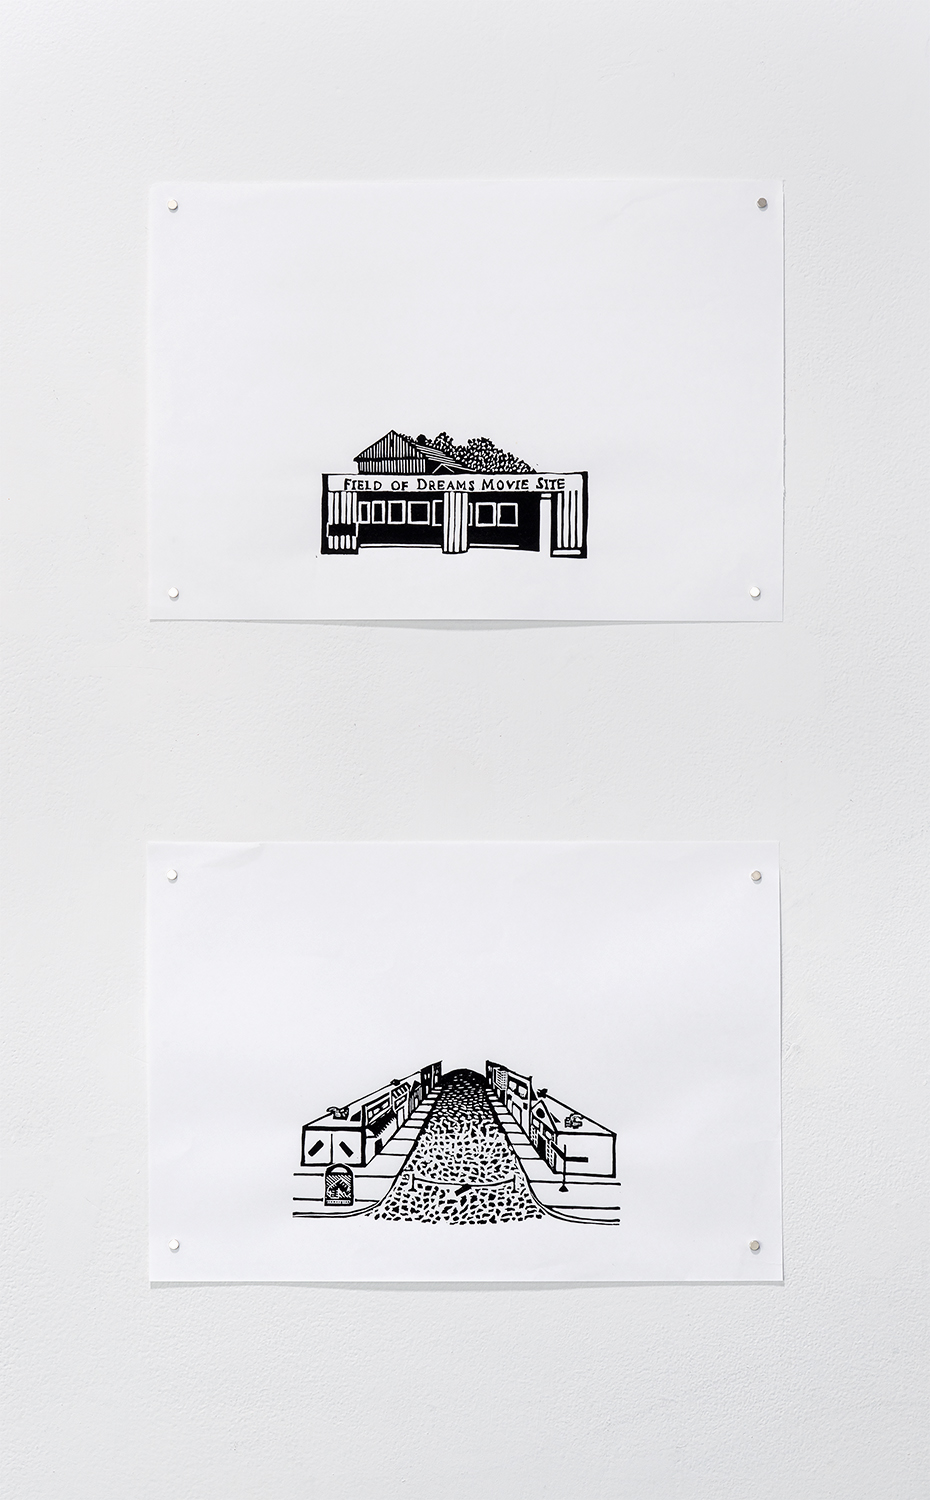 """Field of Dreams and Main Street USA by Alejandro Waskavich. Two small black and white prints hang one above the other. One print shows a building with a large sign that says """"Field of Dreams Movie Site"""" above pillars outside. The other shows a long street view of a small town business district, with a cobblestone street and small storefronts. Image courtesy of Greg Ruffing."""